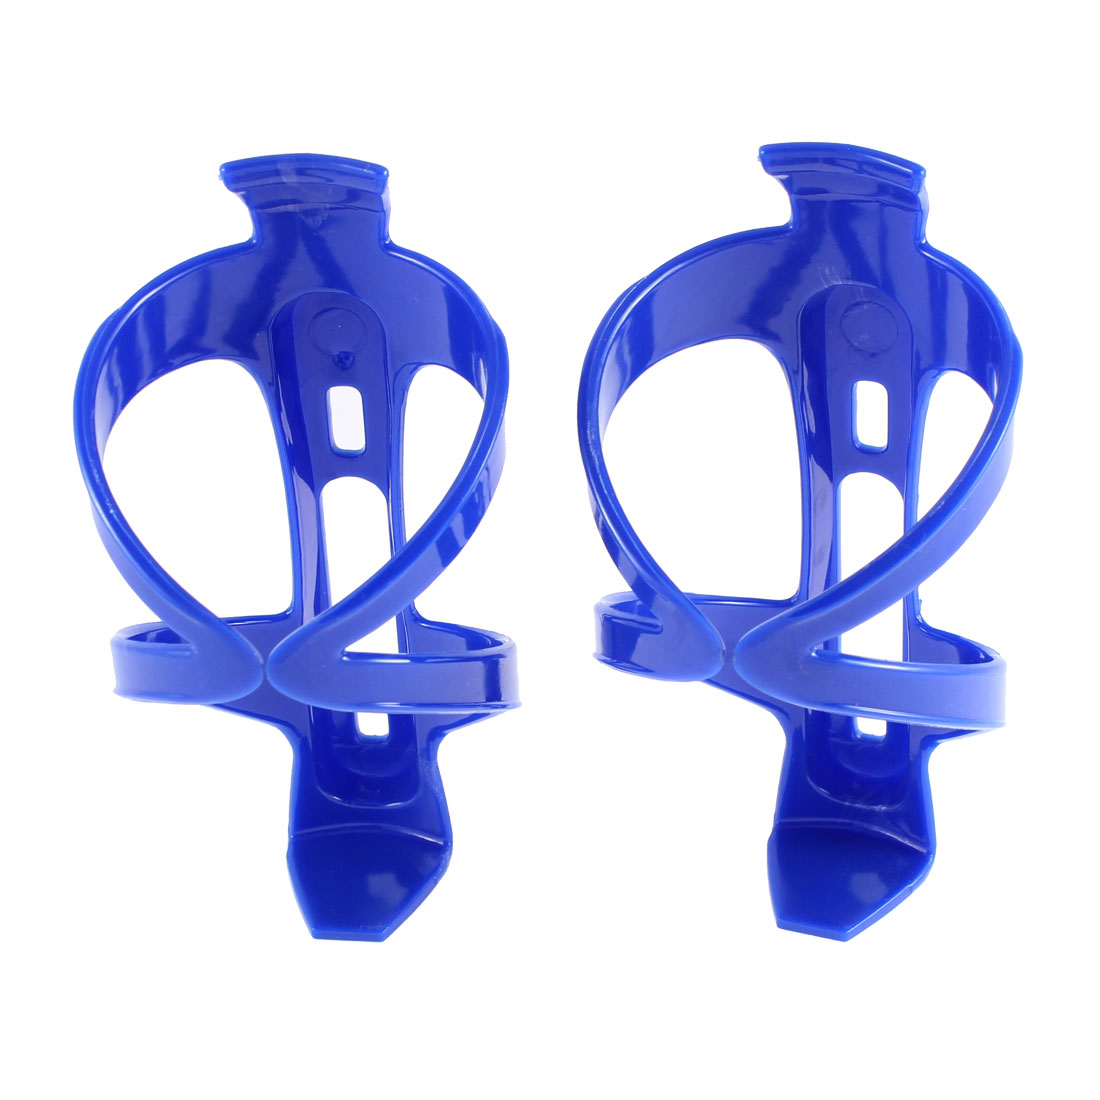 2 Pcs Bicycle Cycling Plastic Water Bottle Rack Holder Bracket Cage Blue